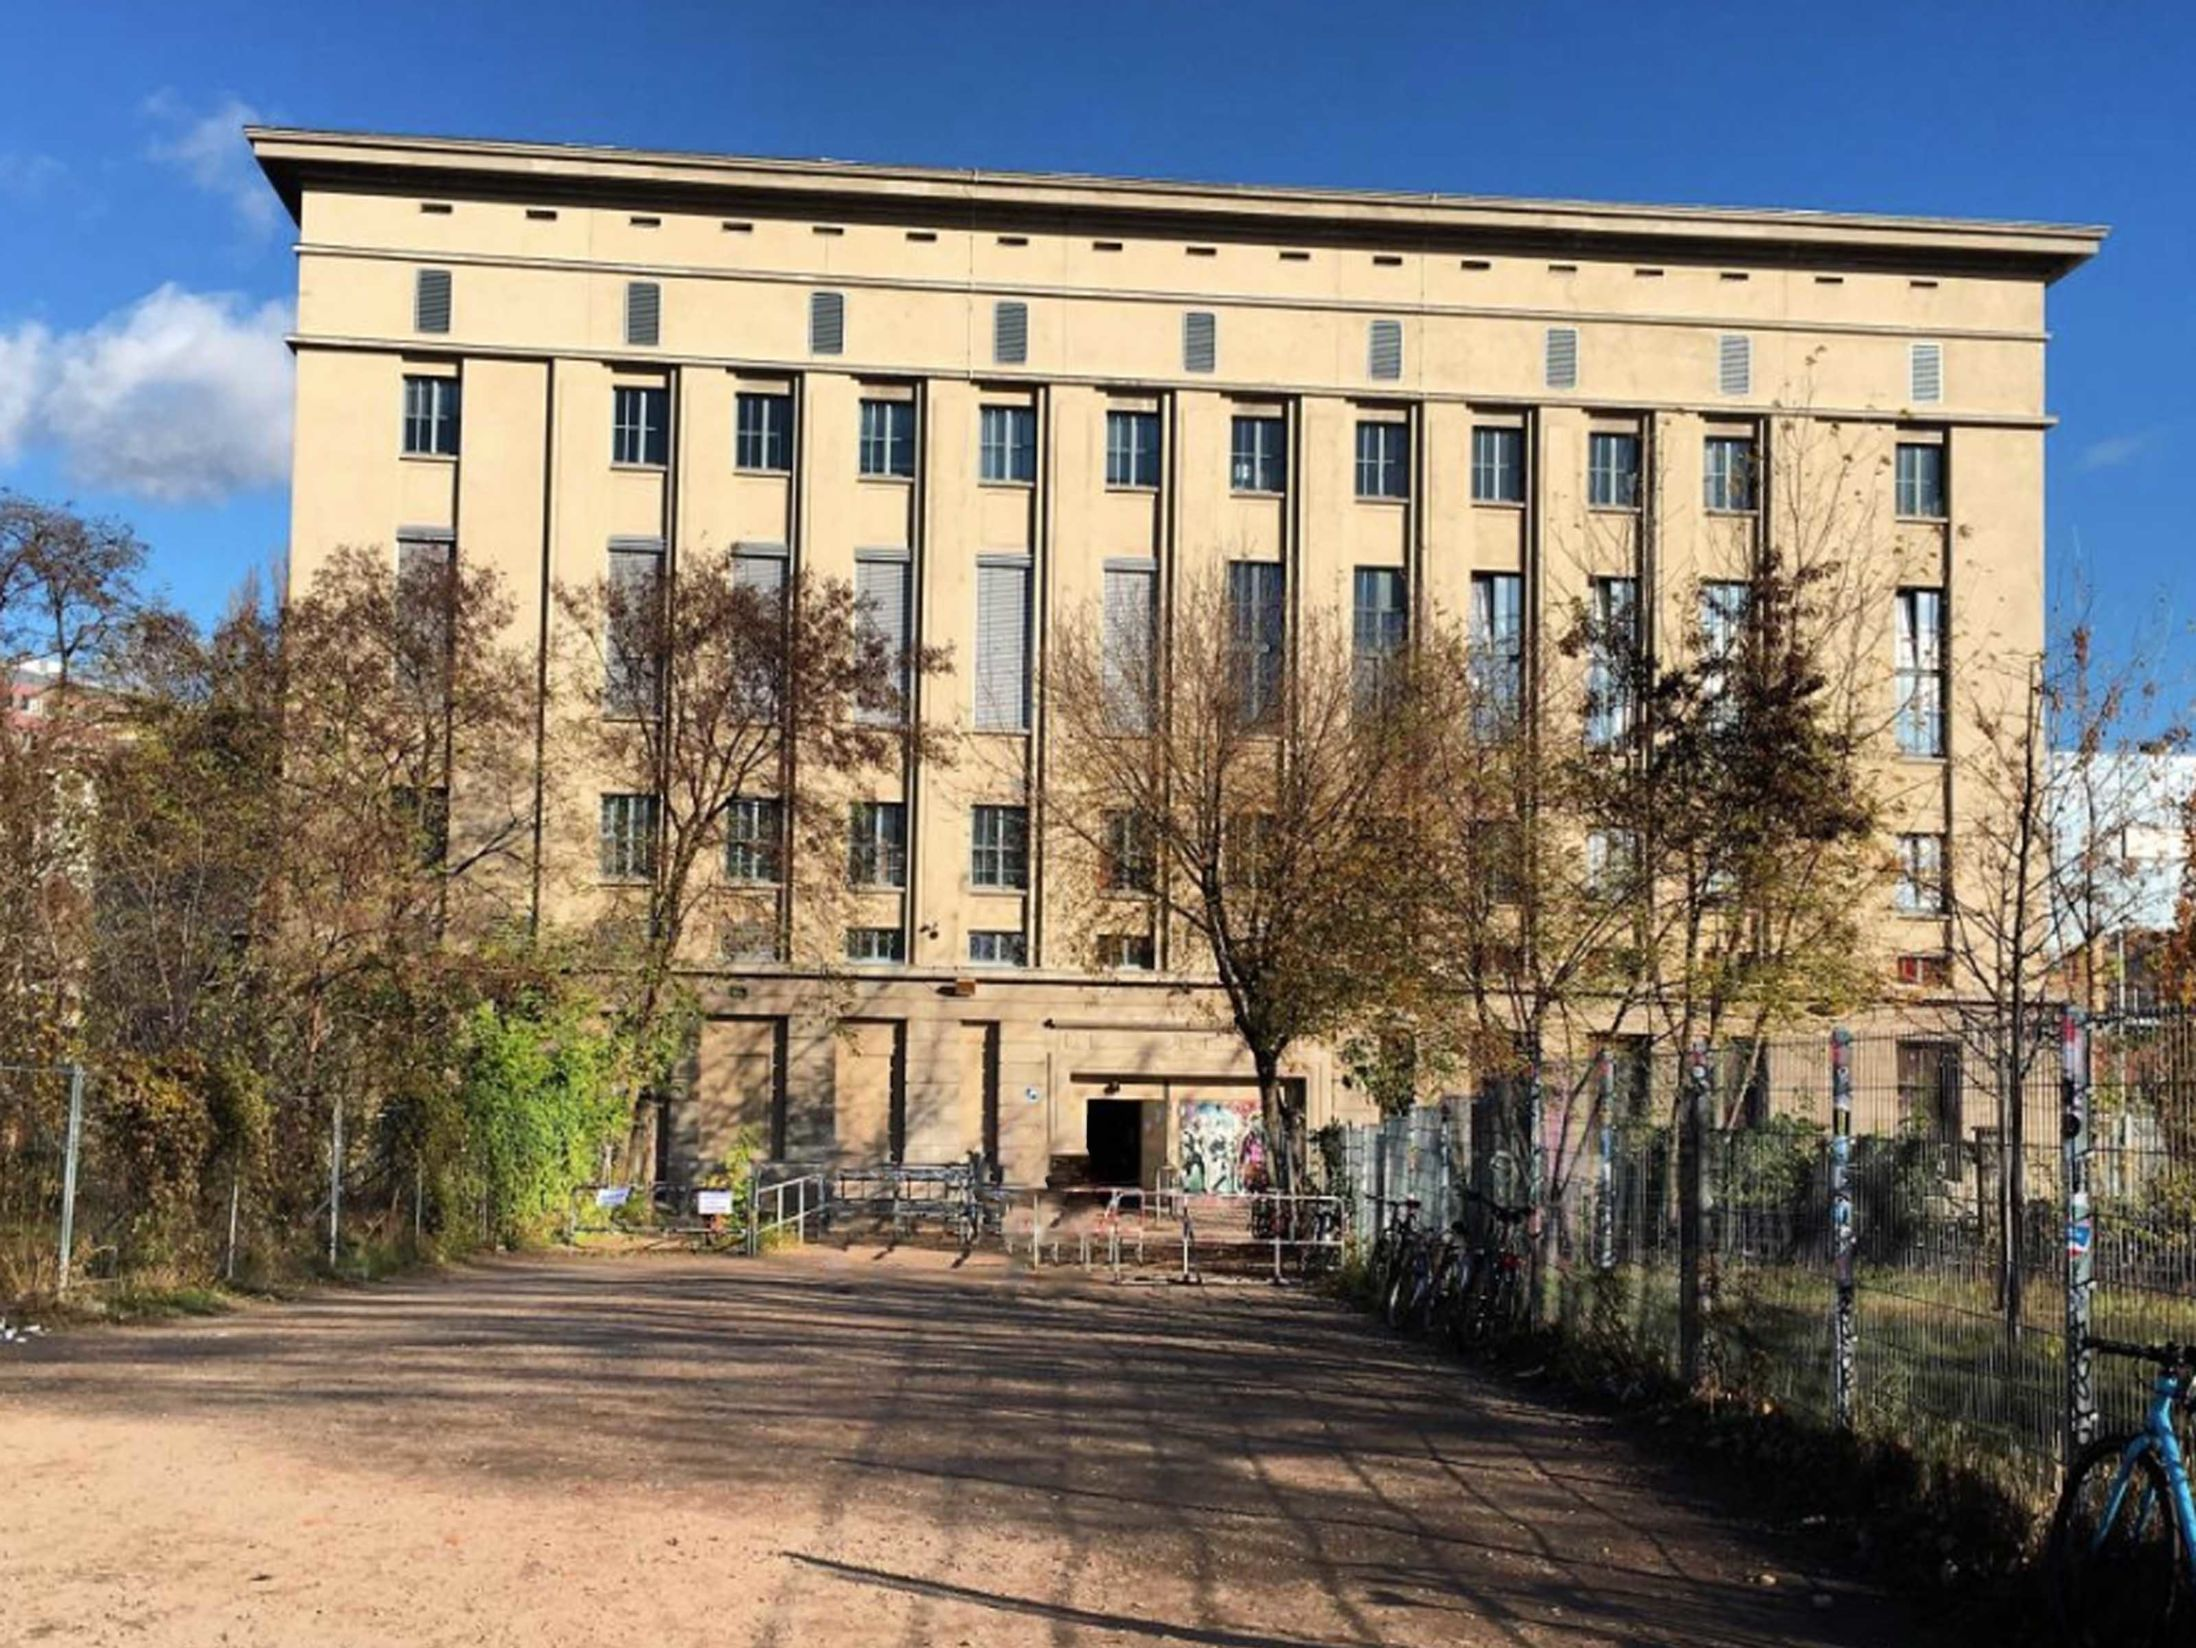 Best Clubs in Berlin - Berghain